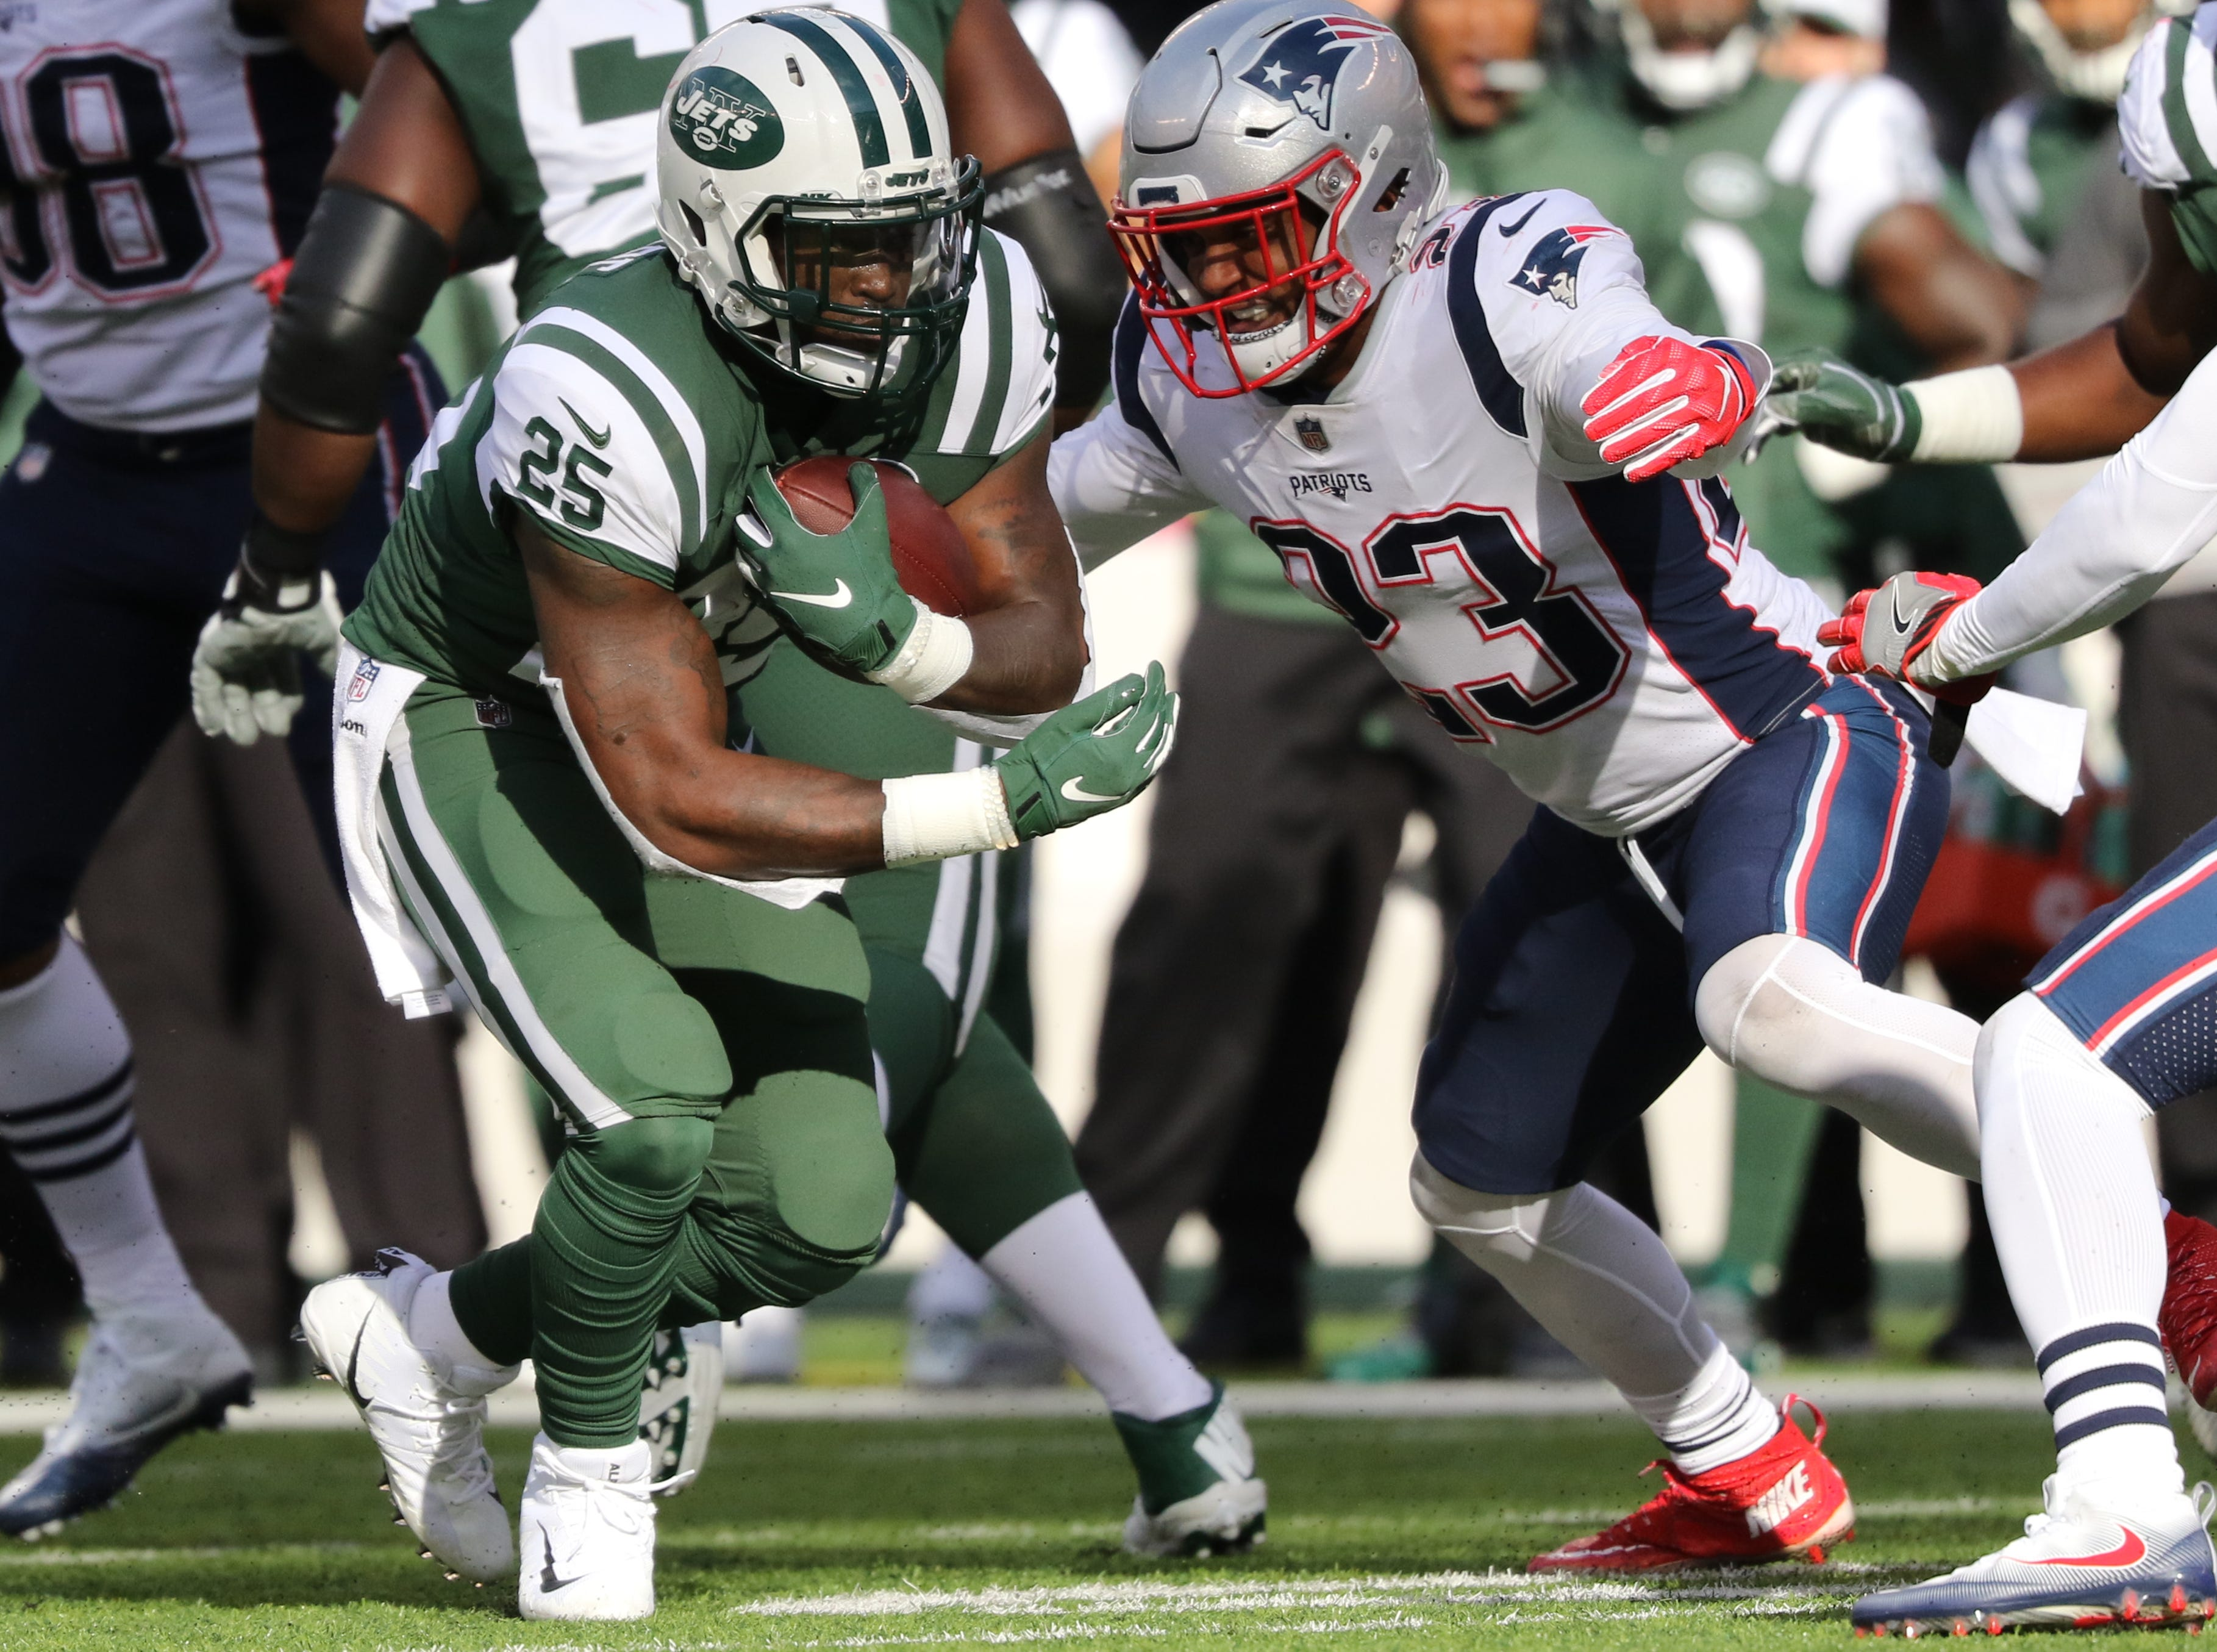 Elijah McGuire, of the Jets, runs with the ball as Patrick Chung, of the Patriots, plays defense. Sunday, November 25, 2018